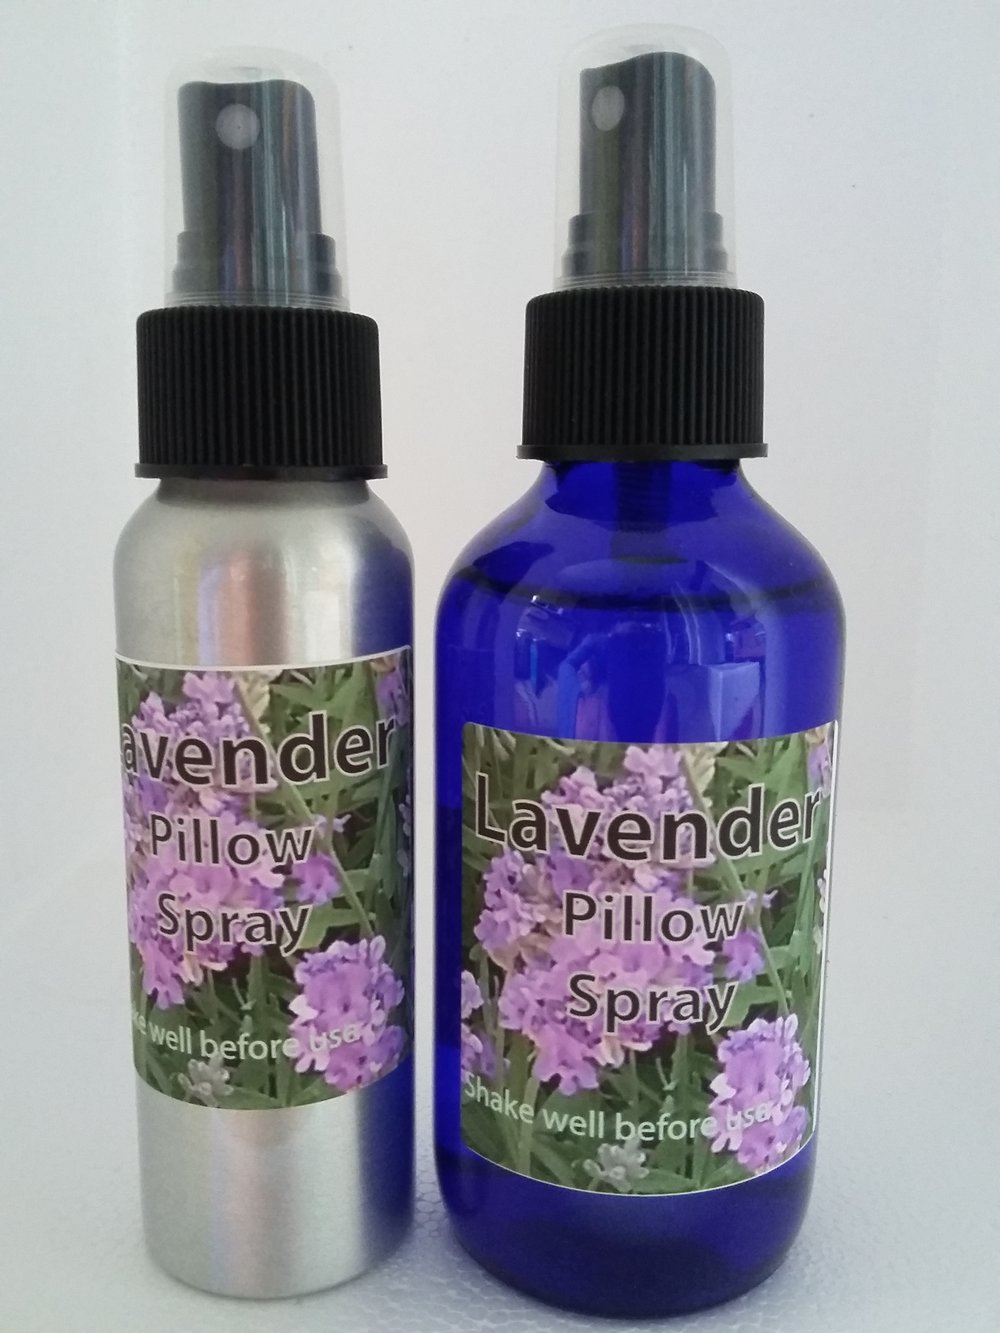 Lavender spray for the pillow, sheets, or anywhere you need a little more calm and relaxation.